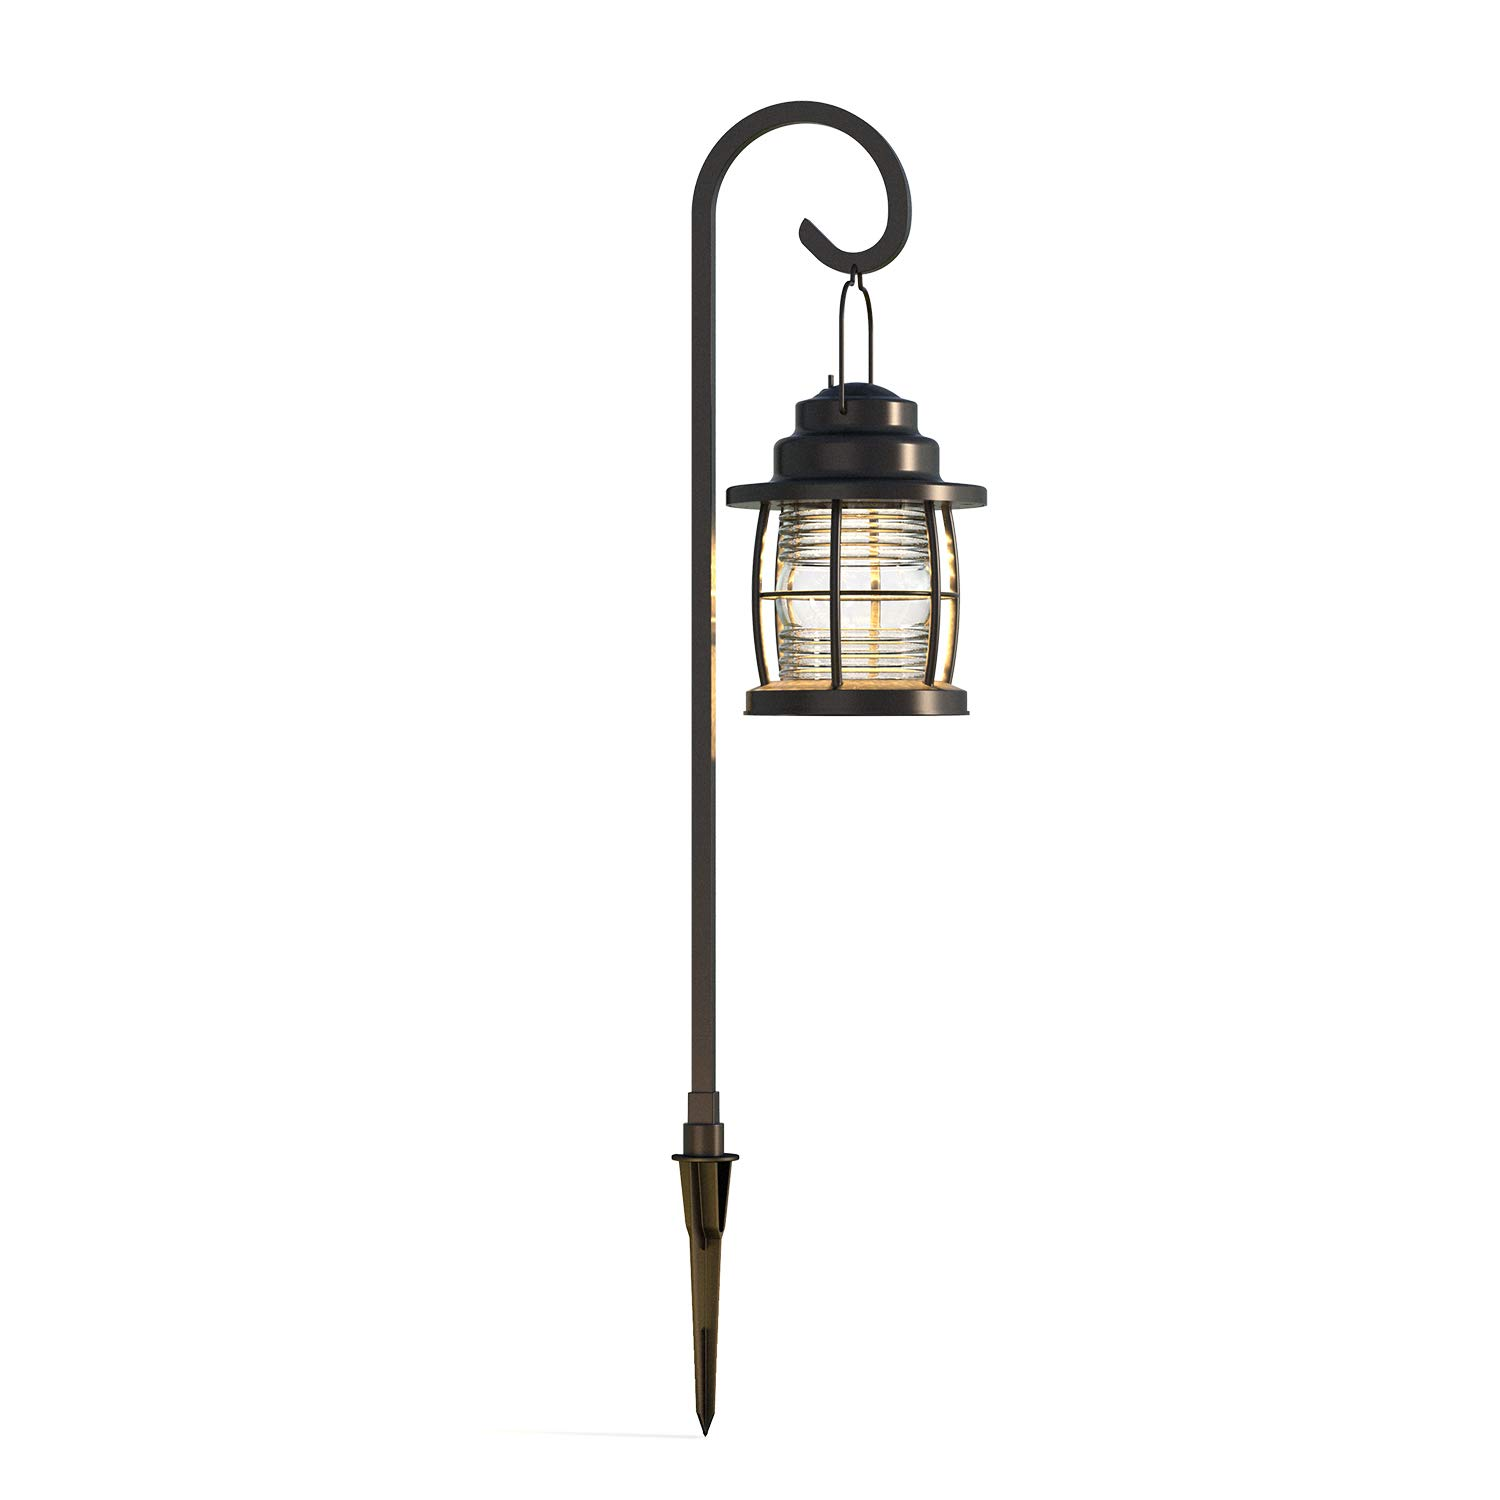 GOODSMANN Harbor Collection LED Pathway Light LED Low Voltage Landscape Lighting, Hanging Pathway Lights Dual Use Shepherd Hook Lights for Driveway, Yard, Lawn, Pathway, Garden 9920-4110-01